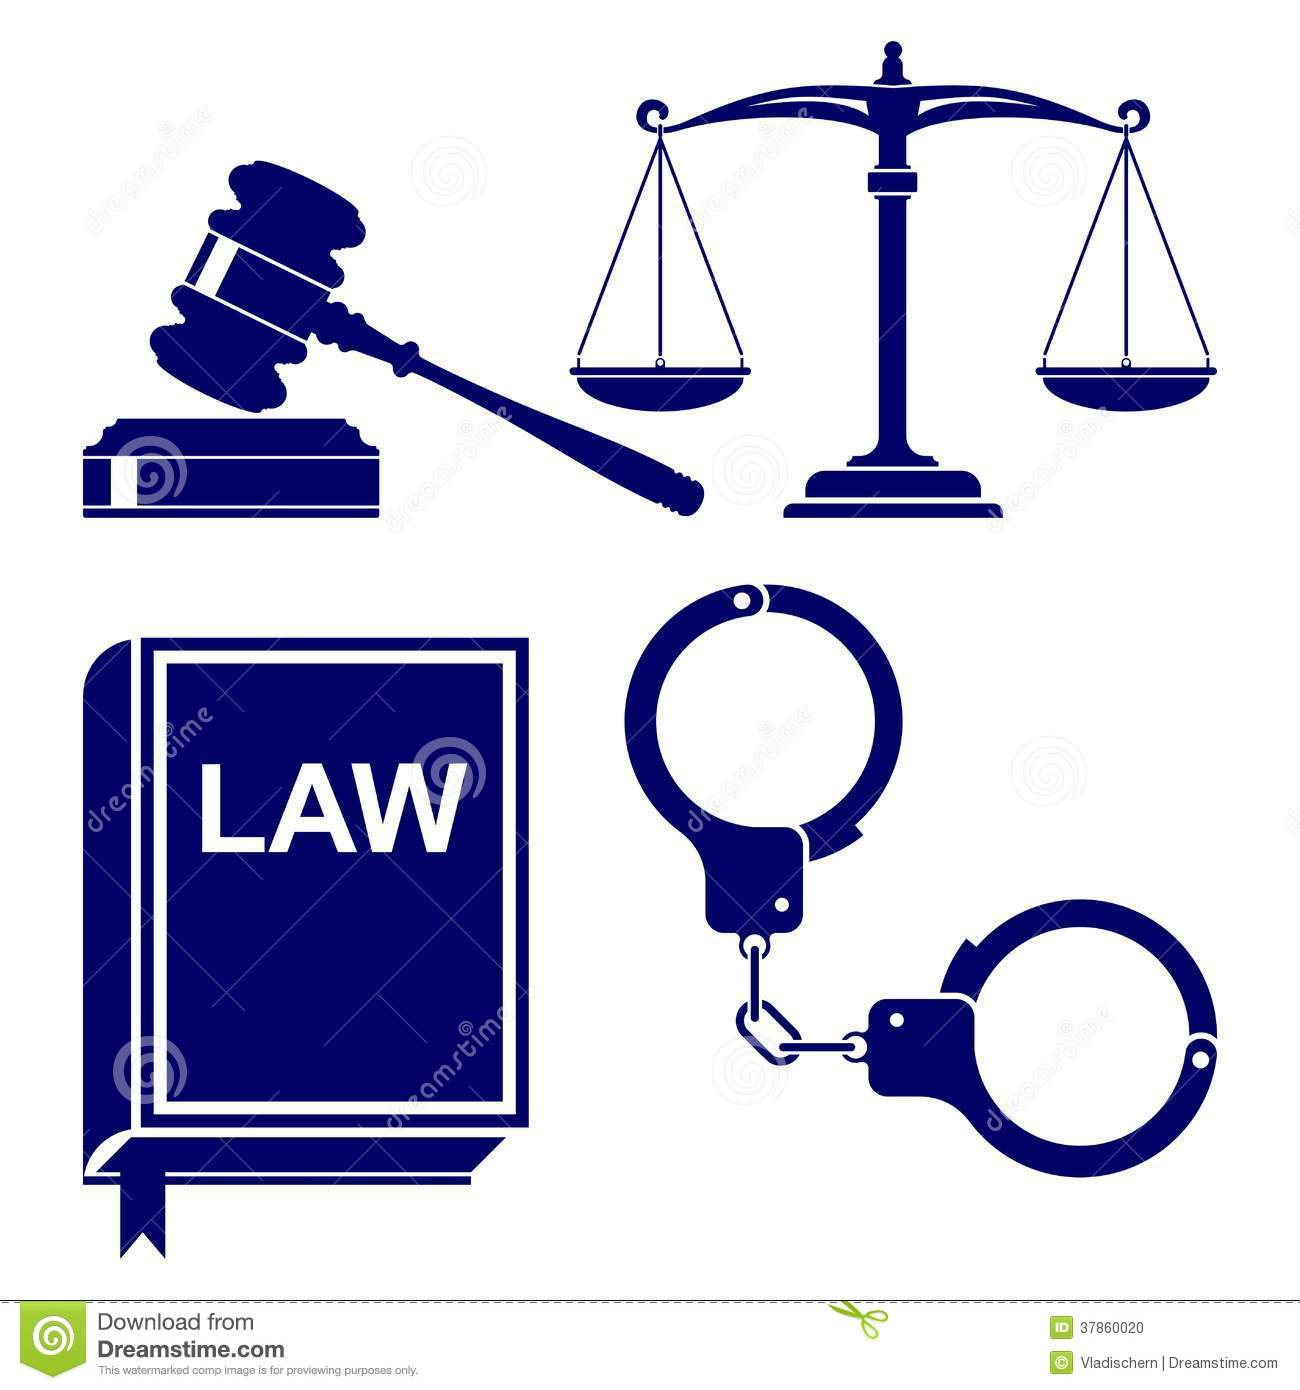 lawyer vector - photo #23